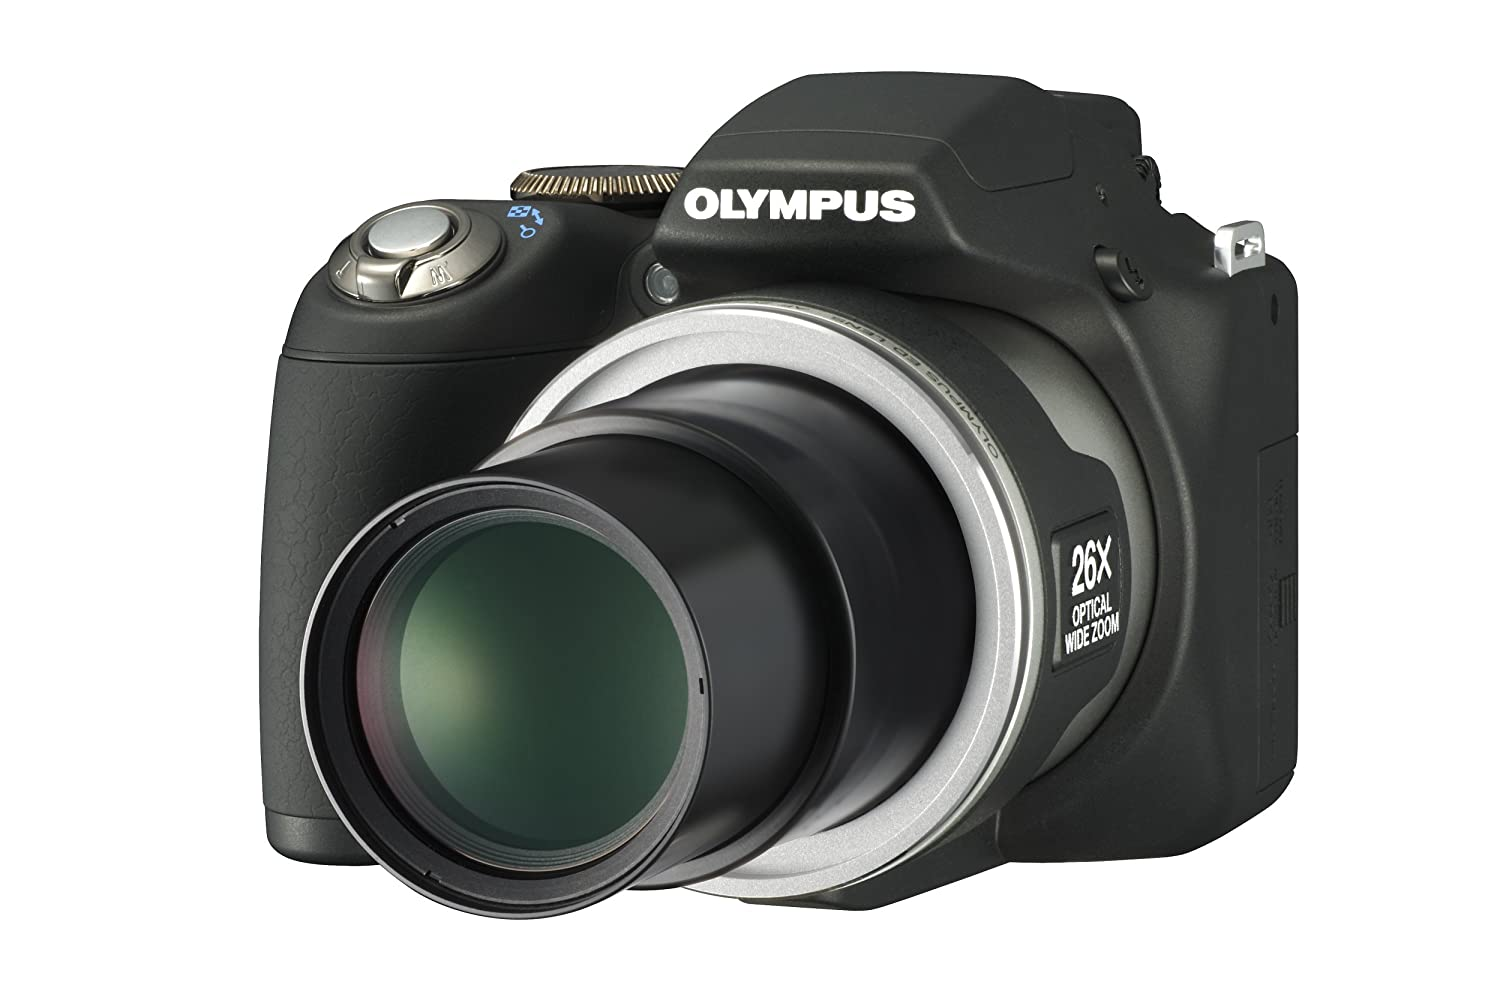 Amazon.com: Olympus SP-590UZ 12 MP Cámara Digital Con Gran ...